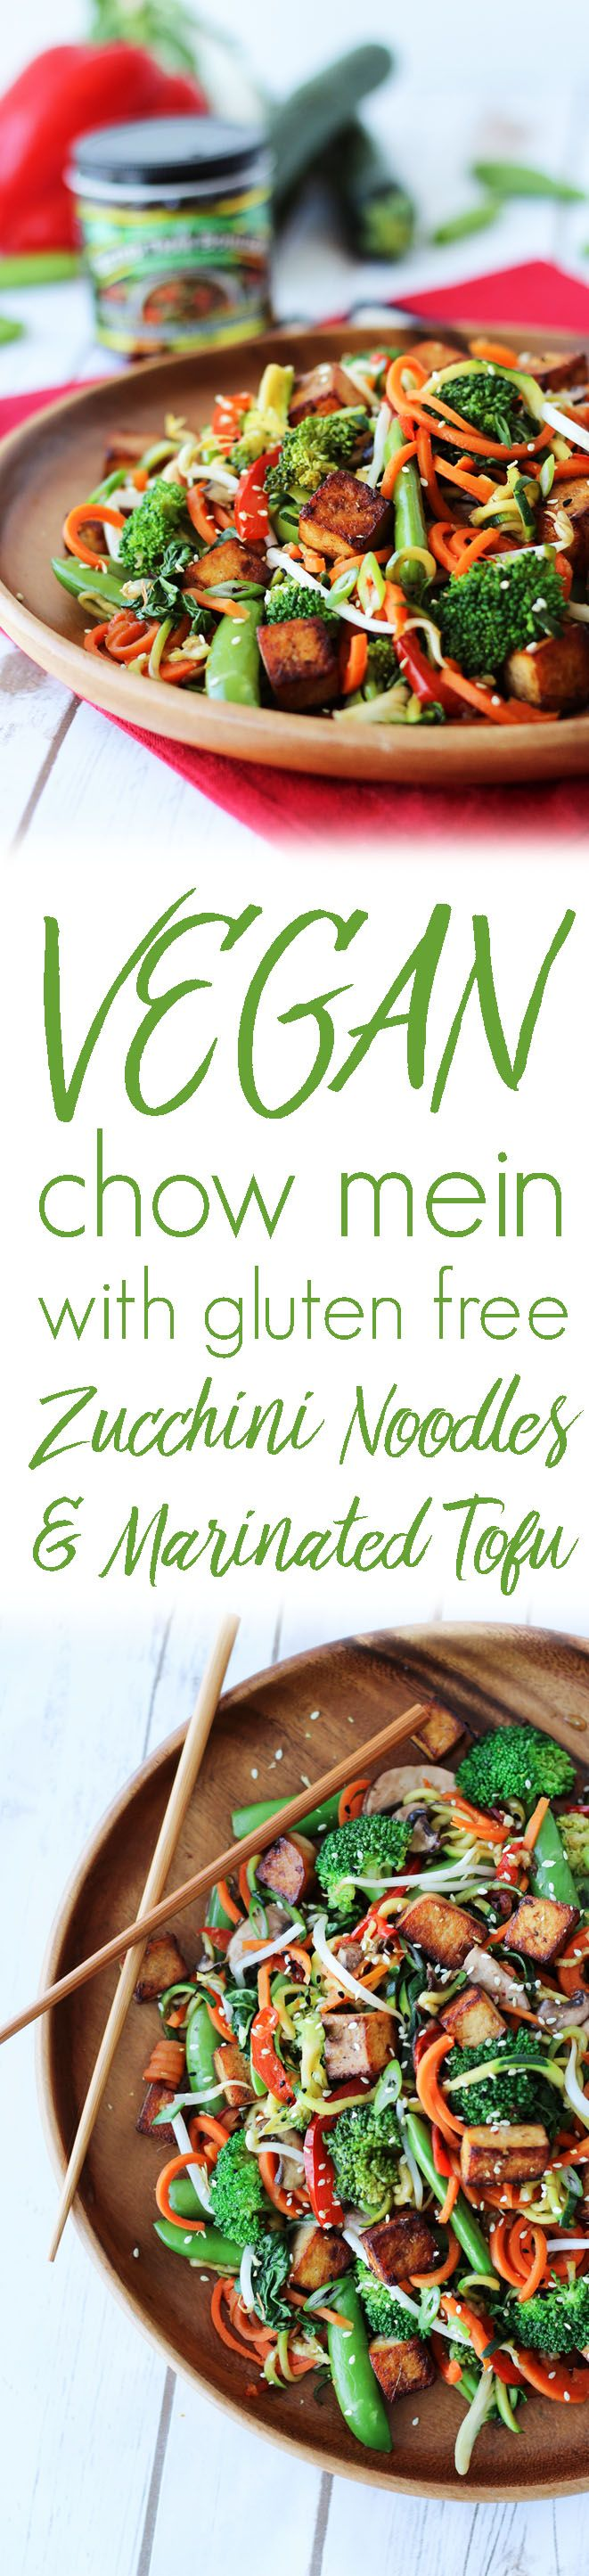 This Vegan Chow Mein features delicious marinated tofu and gluten free low carb zucchini noodles. It's the perfect way to get your Chinese take-out fix without the calories, fat or carbs. This calls f (Best Salad Vegan)